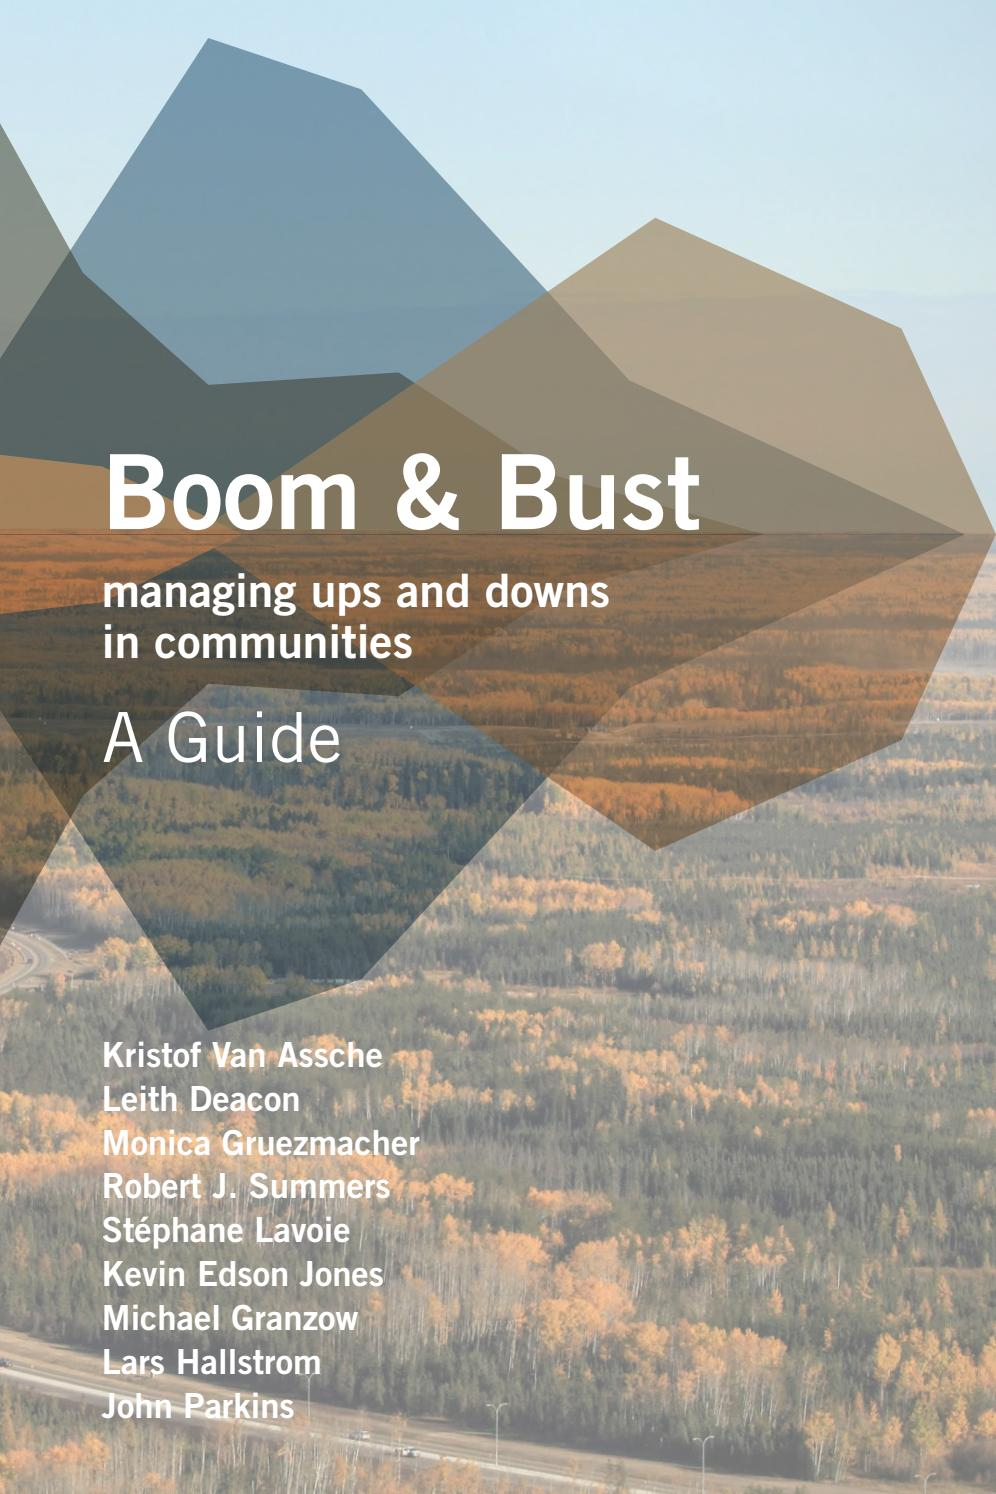 Boom & Bust: A Guide, Managing Ups and Downs in Communities